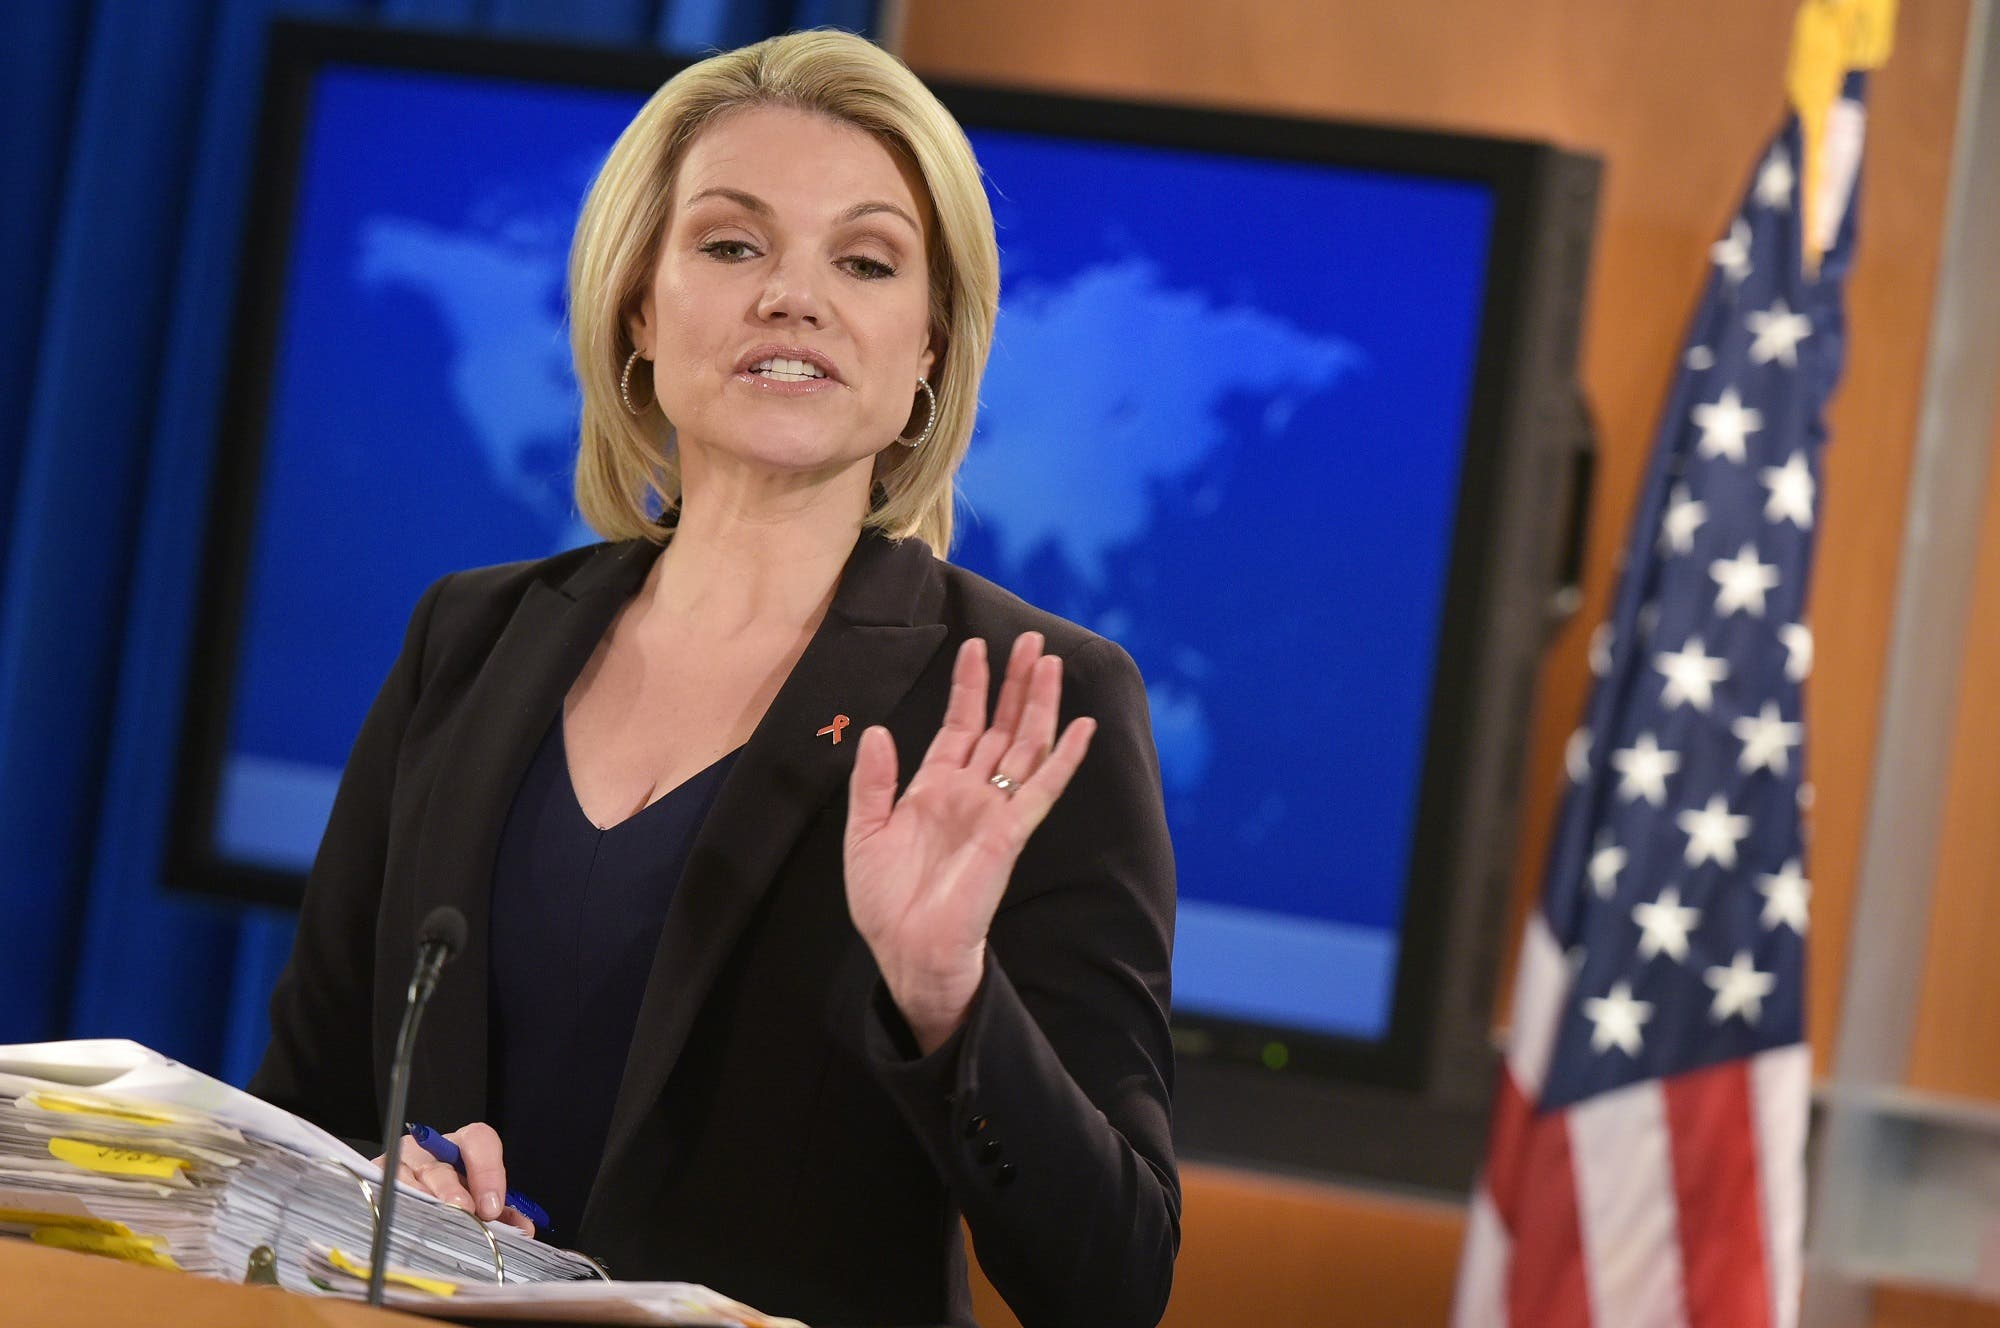 State Department Spokesperson Heather Nauert during a briefing in Washington, DC on November 30, 2017. (AFP)